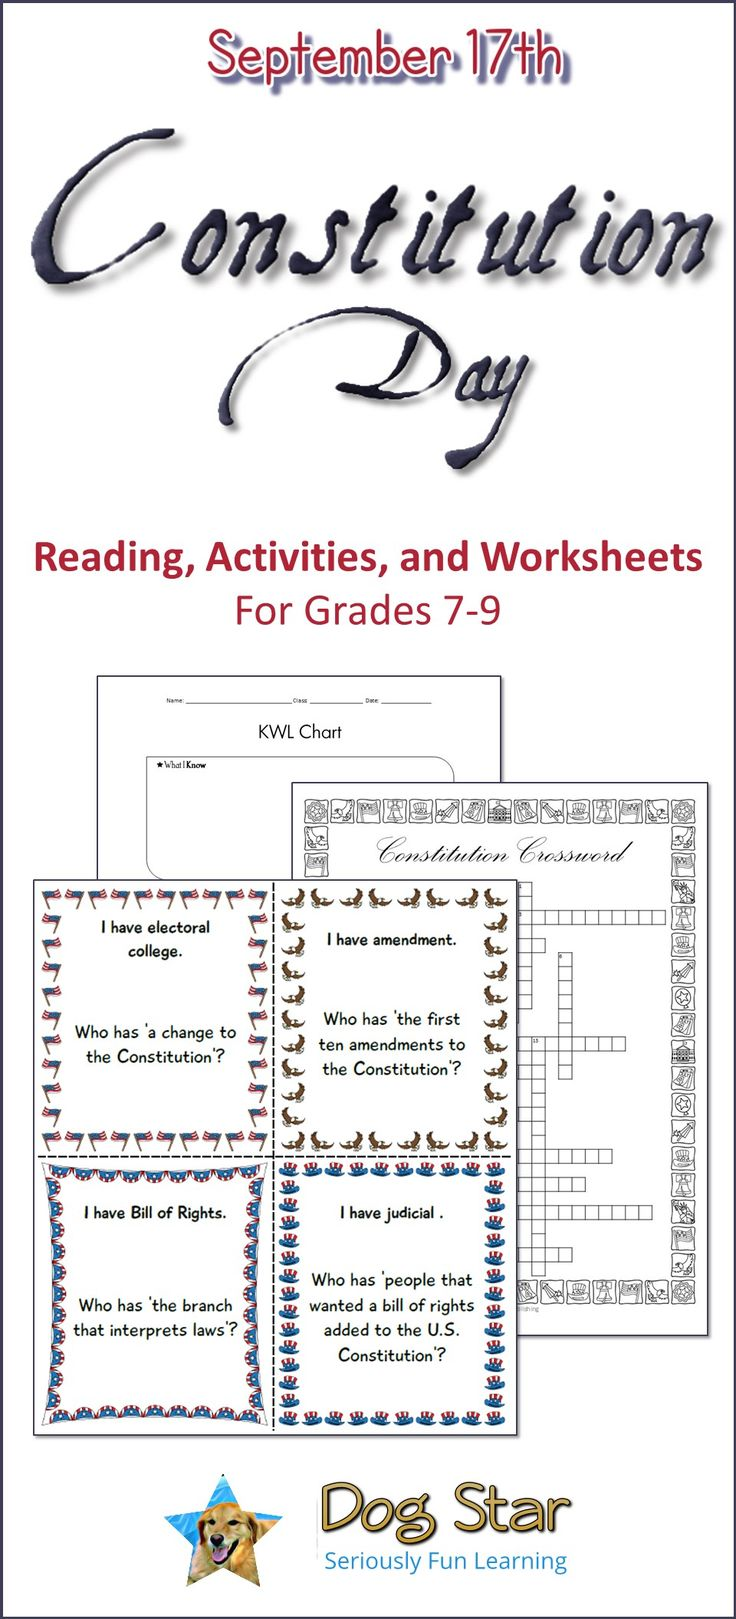 Worksheets Us Constitution Worksheet best 25 constitution day ideas on pinterest us preamble commemorate the united states september 17th with this collection of middle